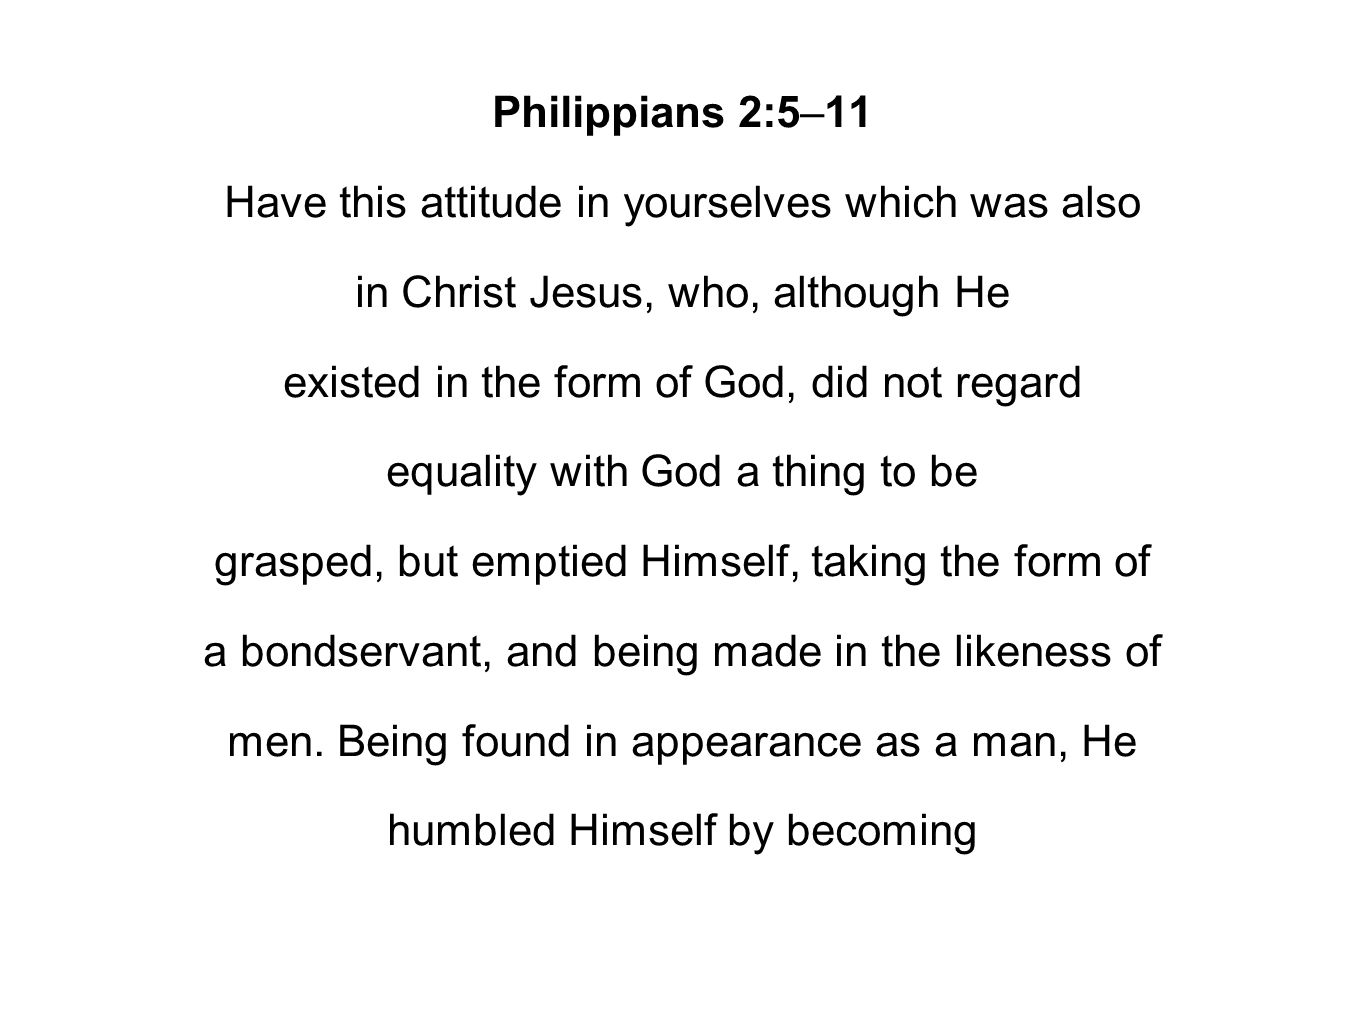 Philippians 2:5–11 Have this attitude in yourselves which was also in Christ Jesus, who, although He existed in the form of God, did not regard equality with God a thing to be grasped, but emptied Himself, taking the form of a bondservant, and being made in the likeness of men.